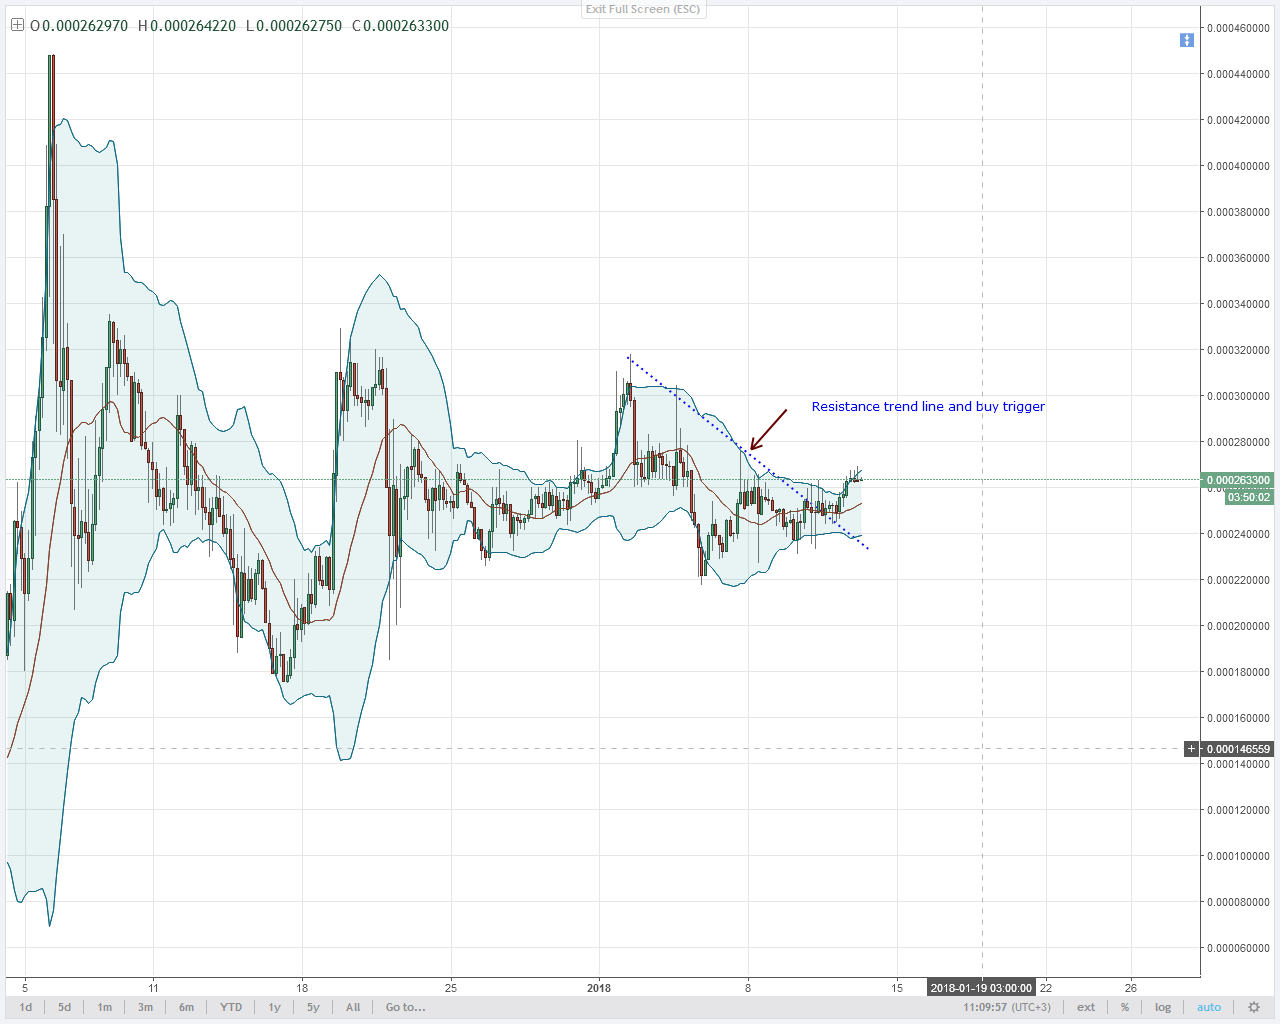 TRADE THE BREAK OUT AND BUY IOTA